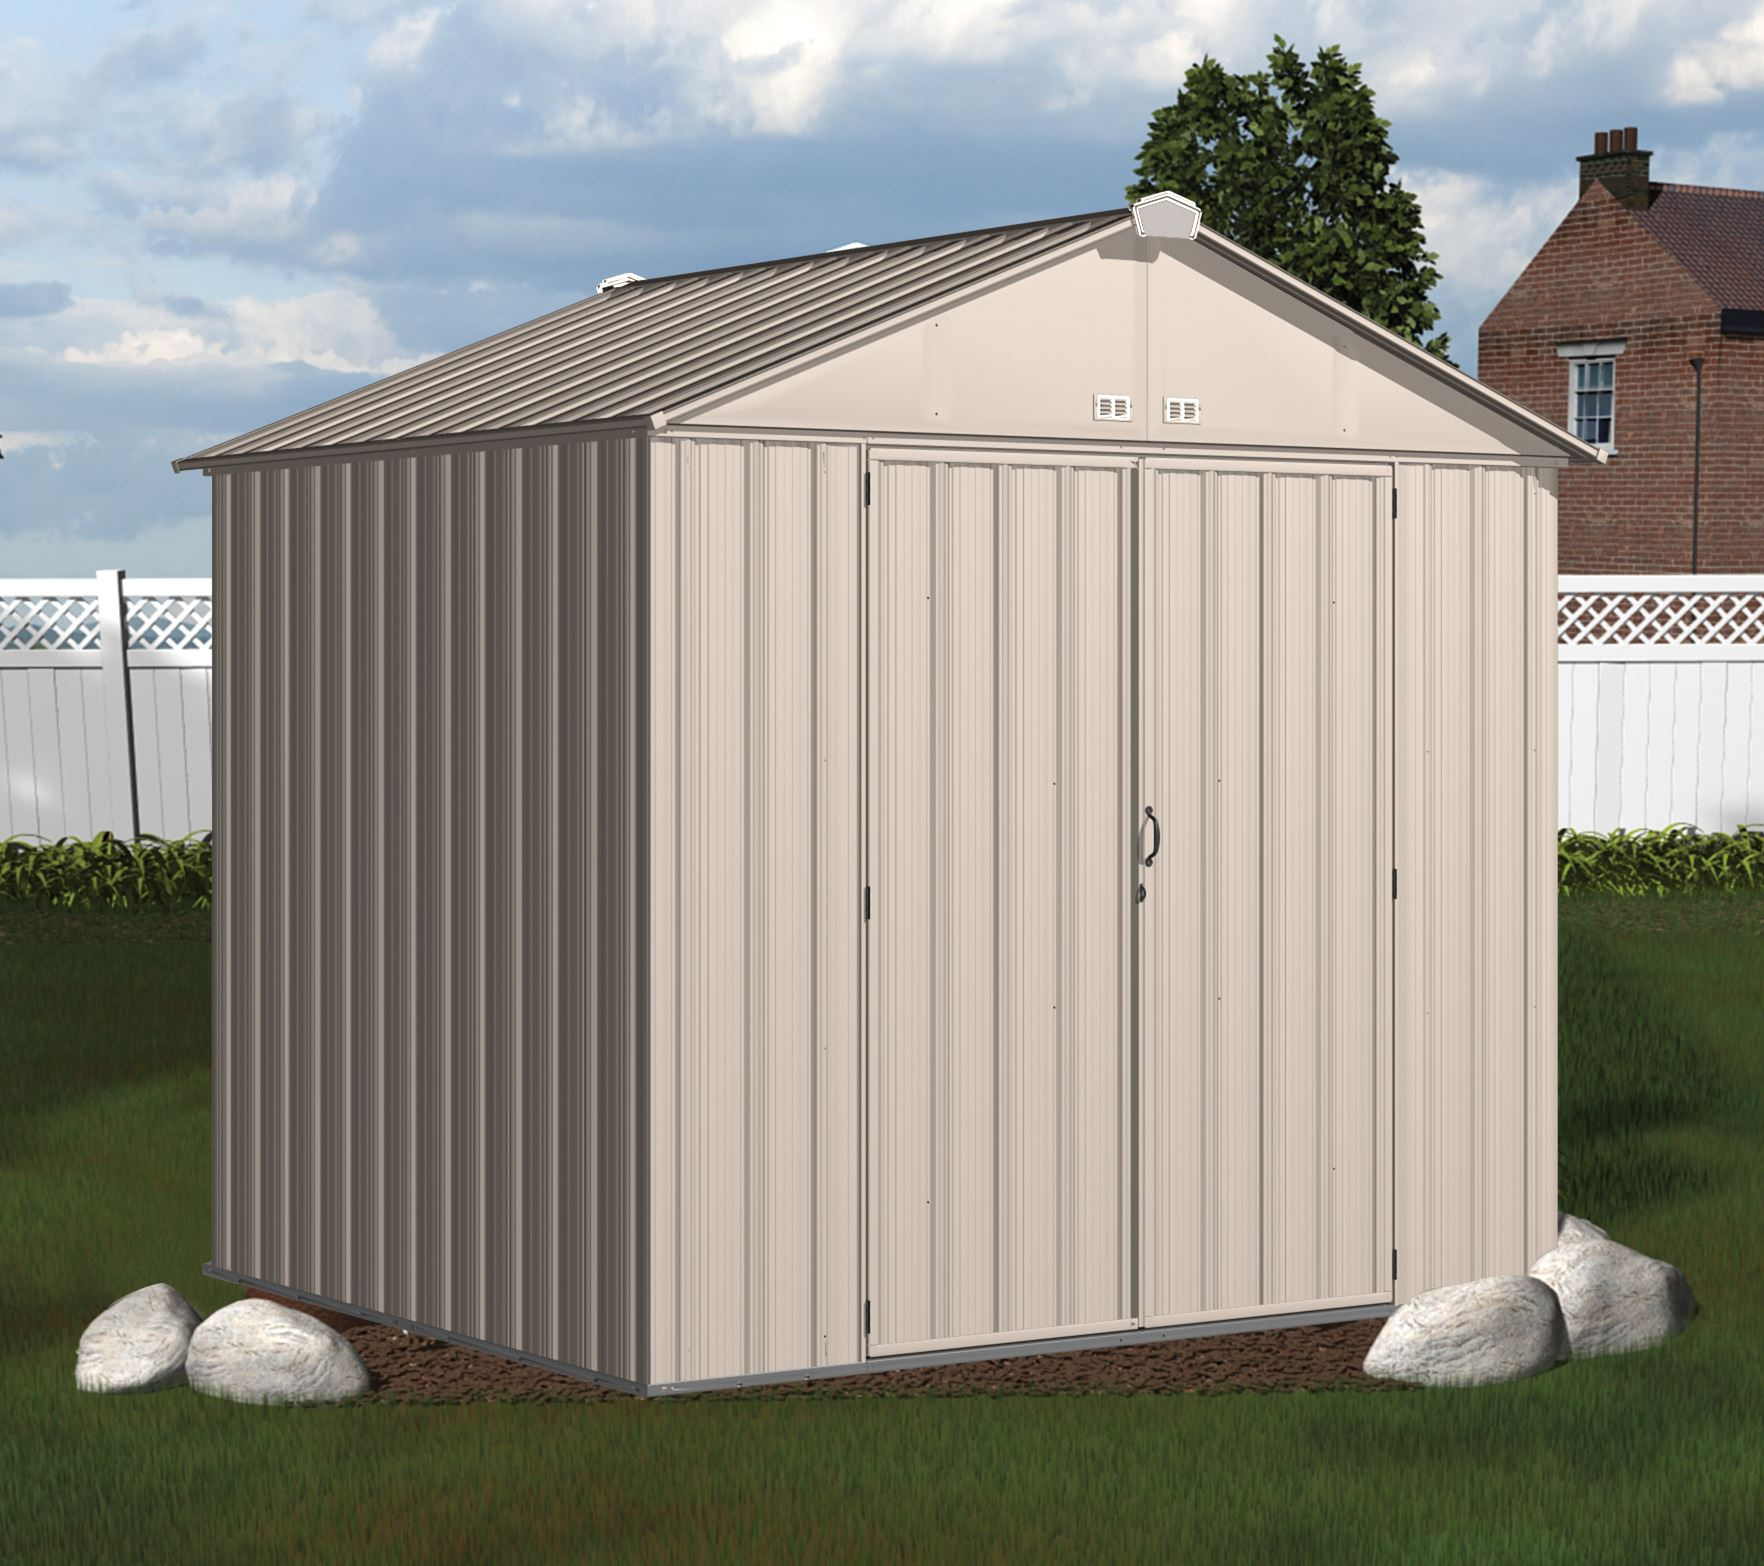 Abri de jardin arrow ezee shed ez87 cr me - Abri de jardin arrow ...